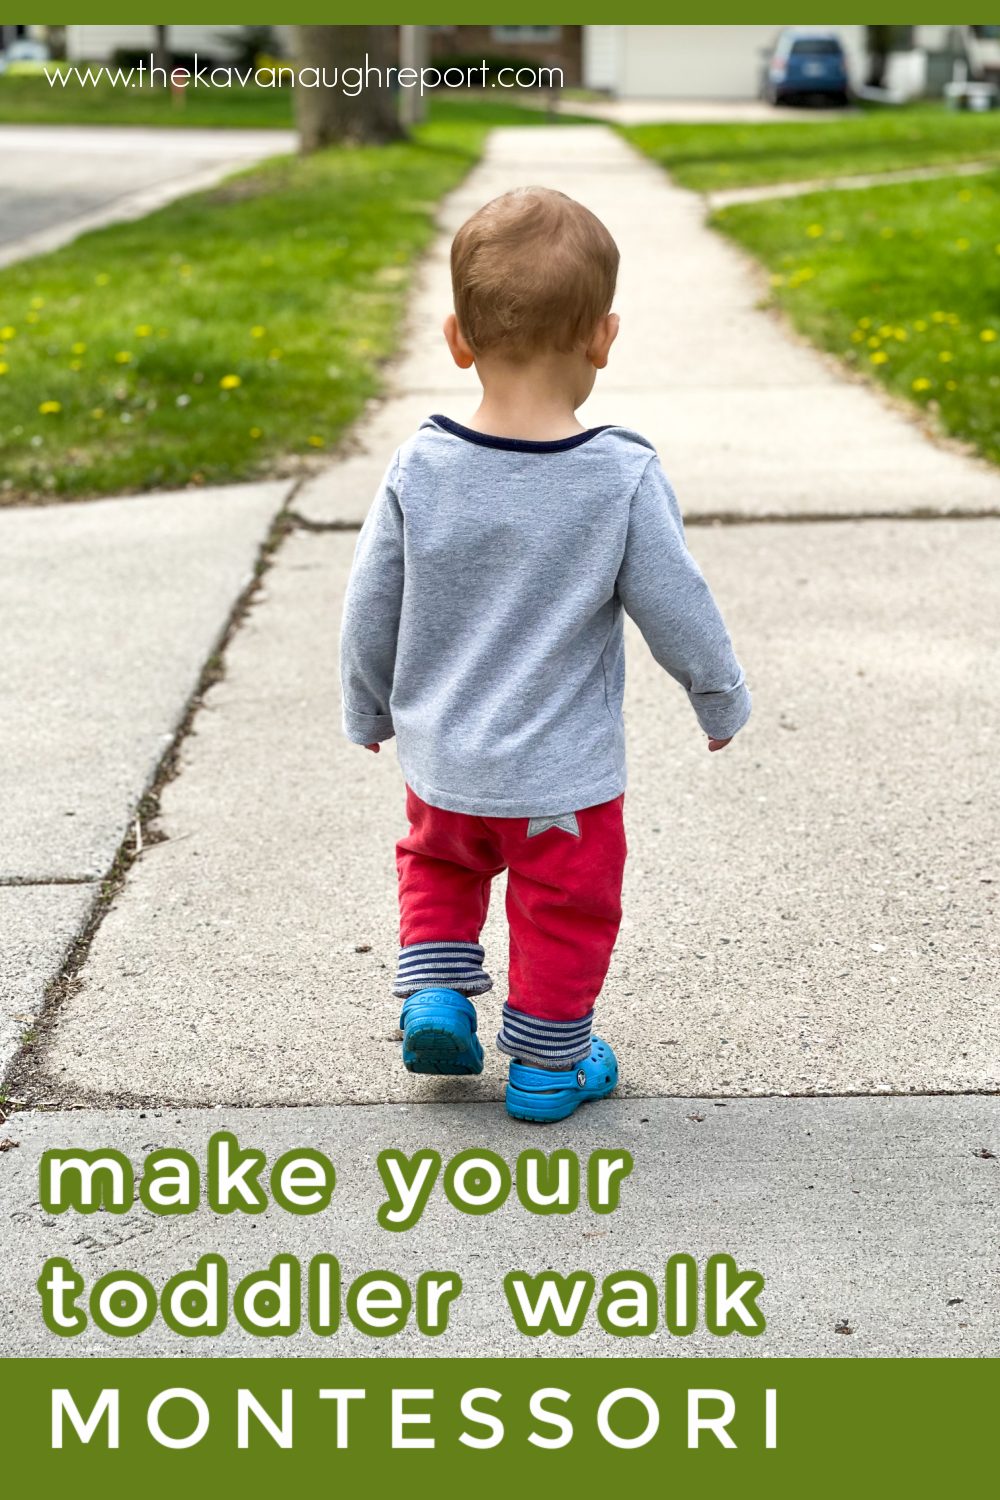 Montessori tips for walking with a 1-year-old. This fun, easy activity is perfect for getting outside with your toddler.